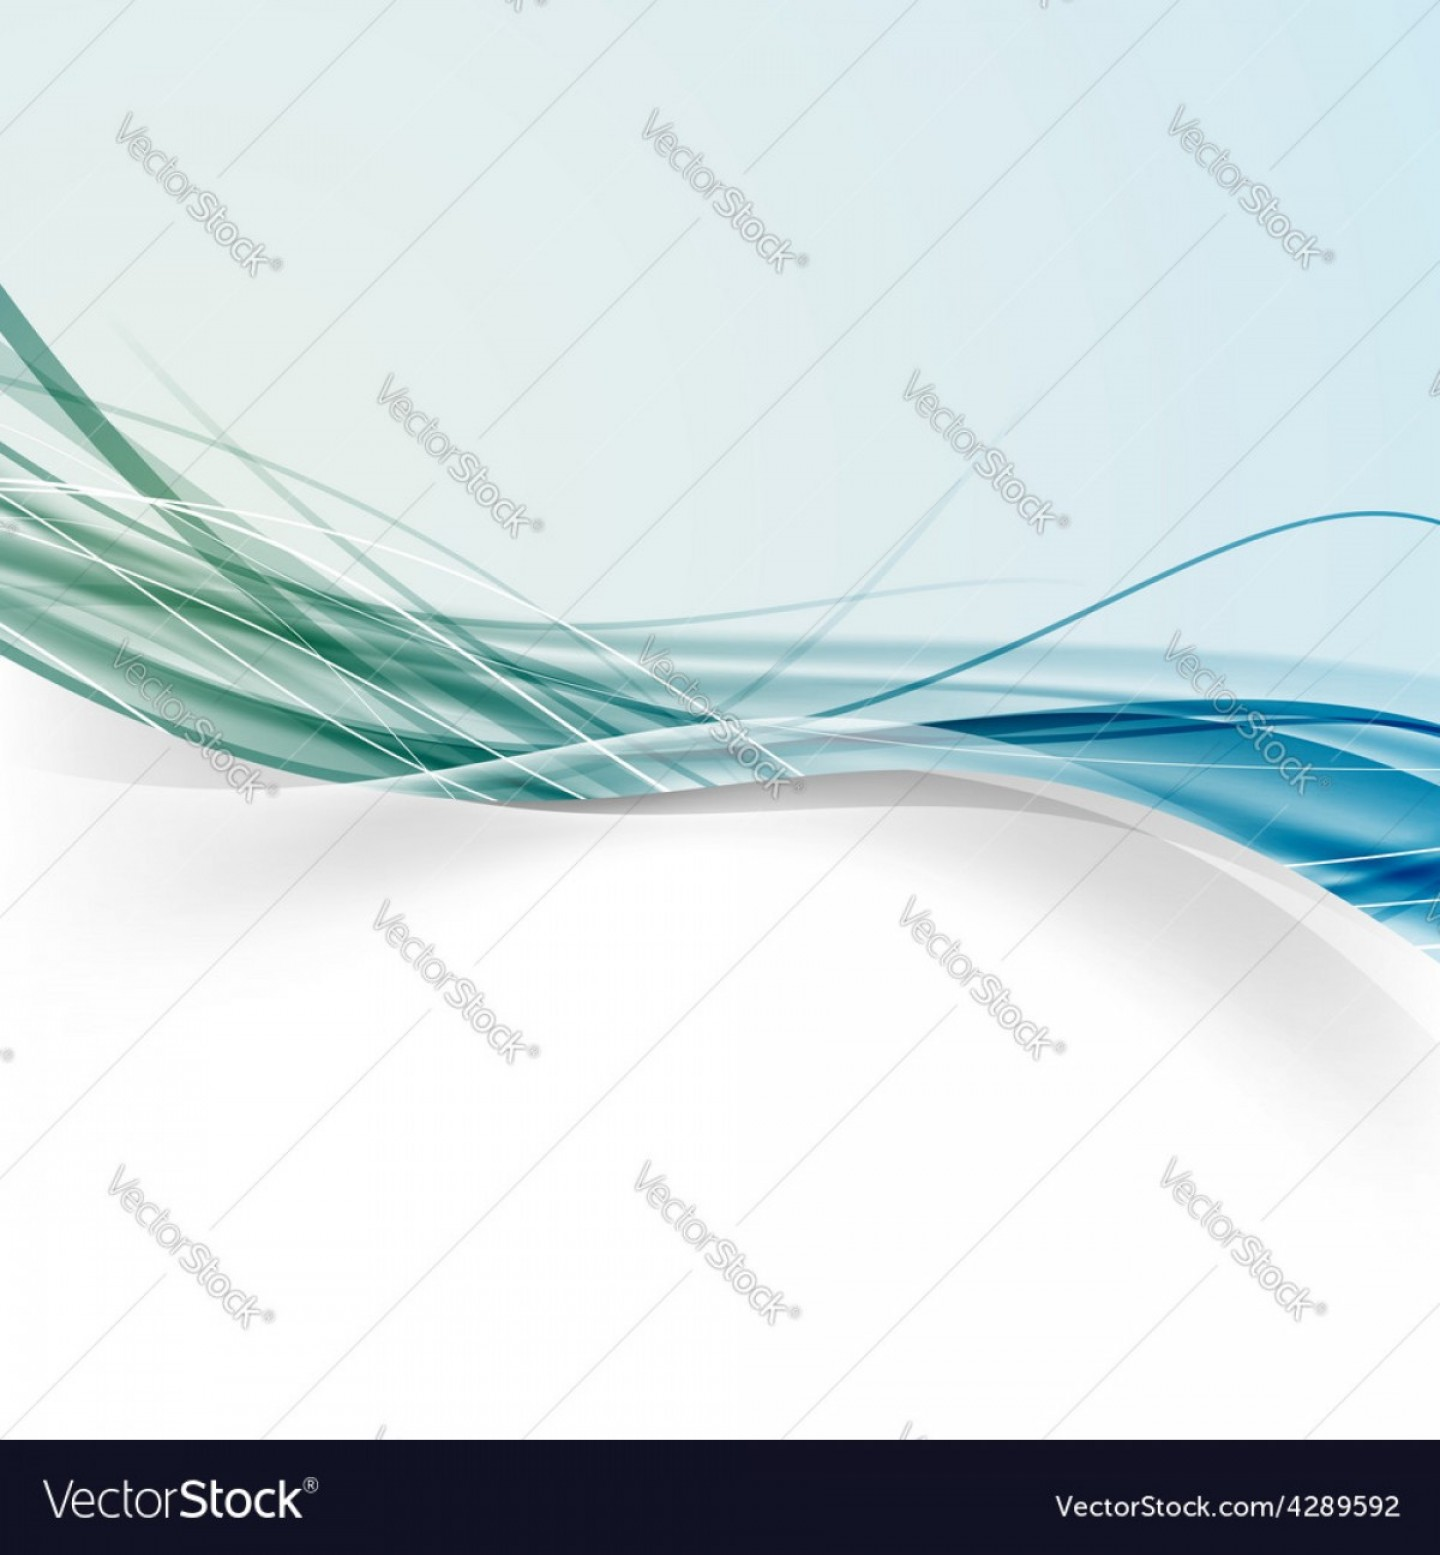 Vector Swoosh Simple Two Line: Speed Smooth Wave Swoosh Line Abstract Border Vector